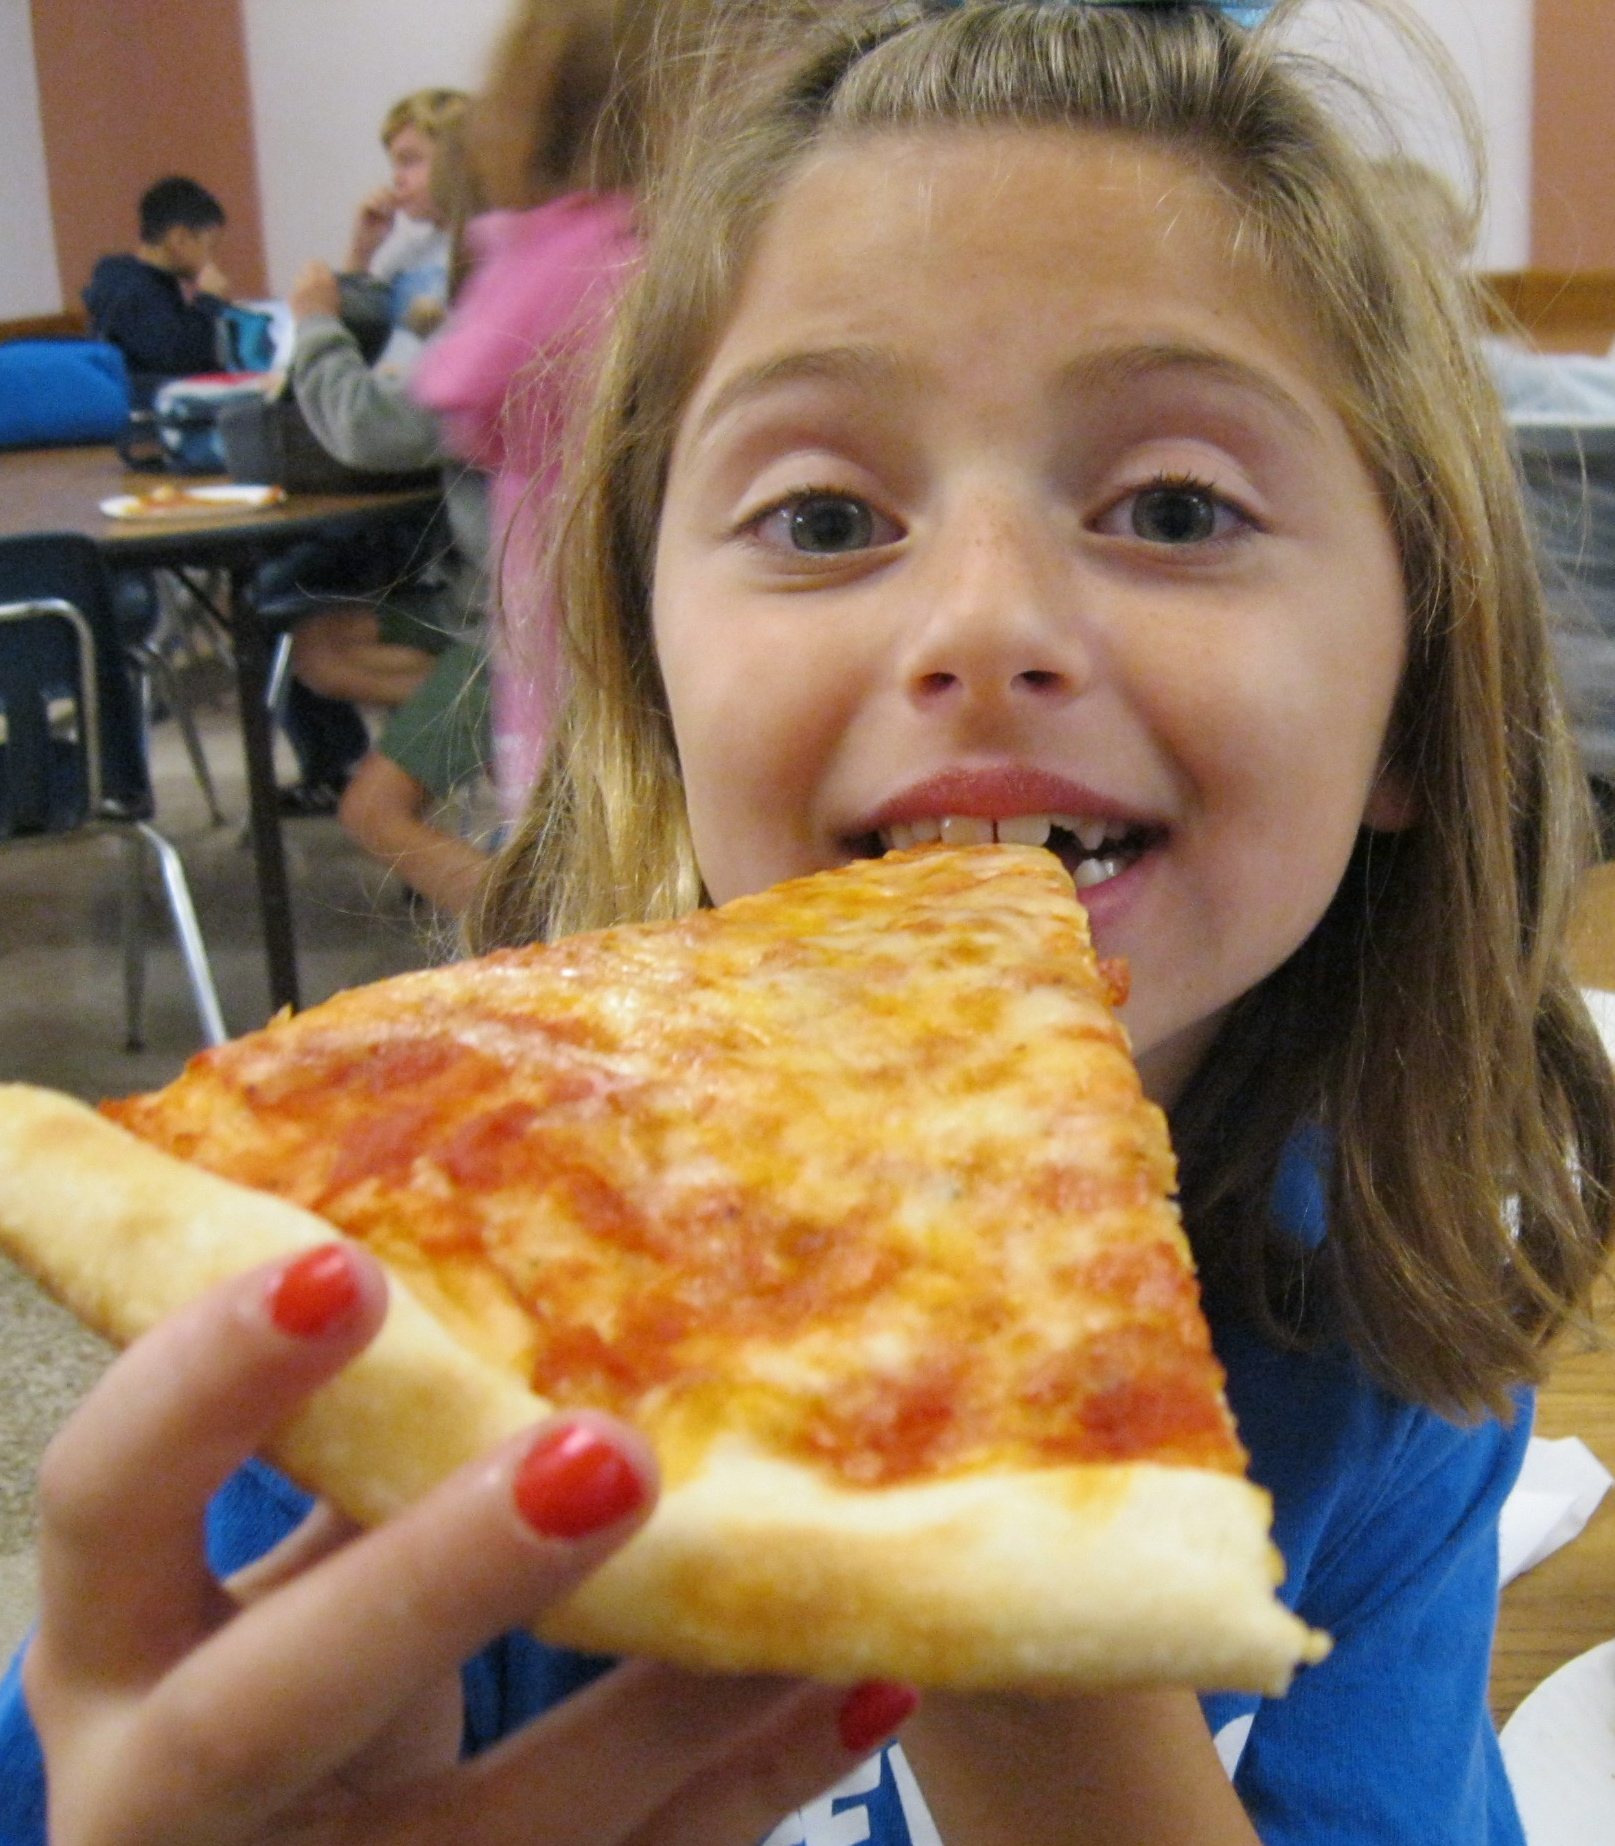 Cheese pizza and little girl